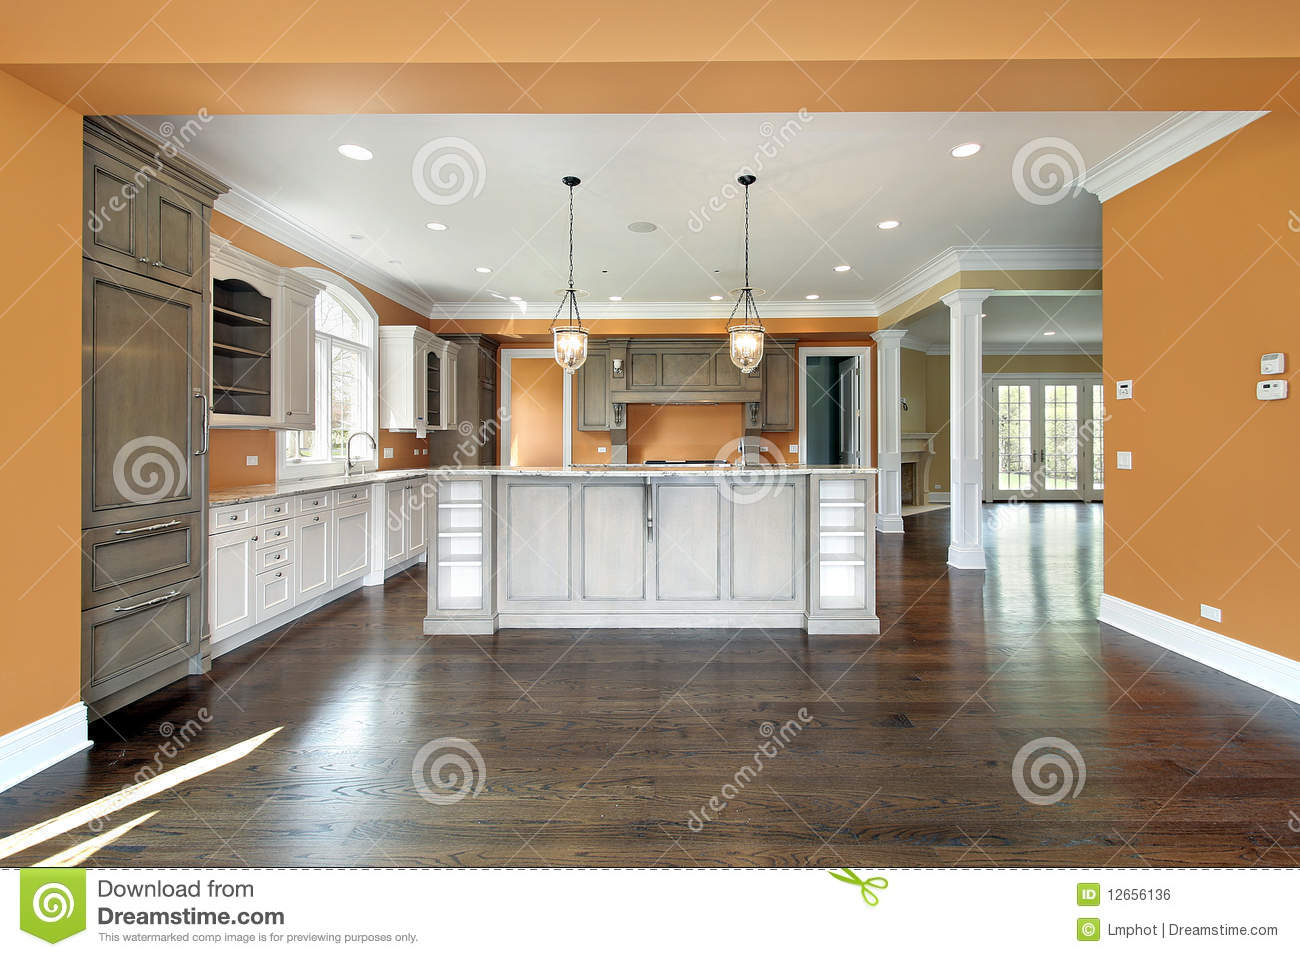 Orange Kitchen Walls kitchen with orange walls royalty free stock image - image: 12656136